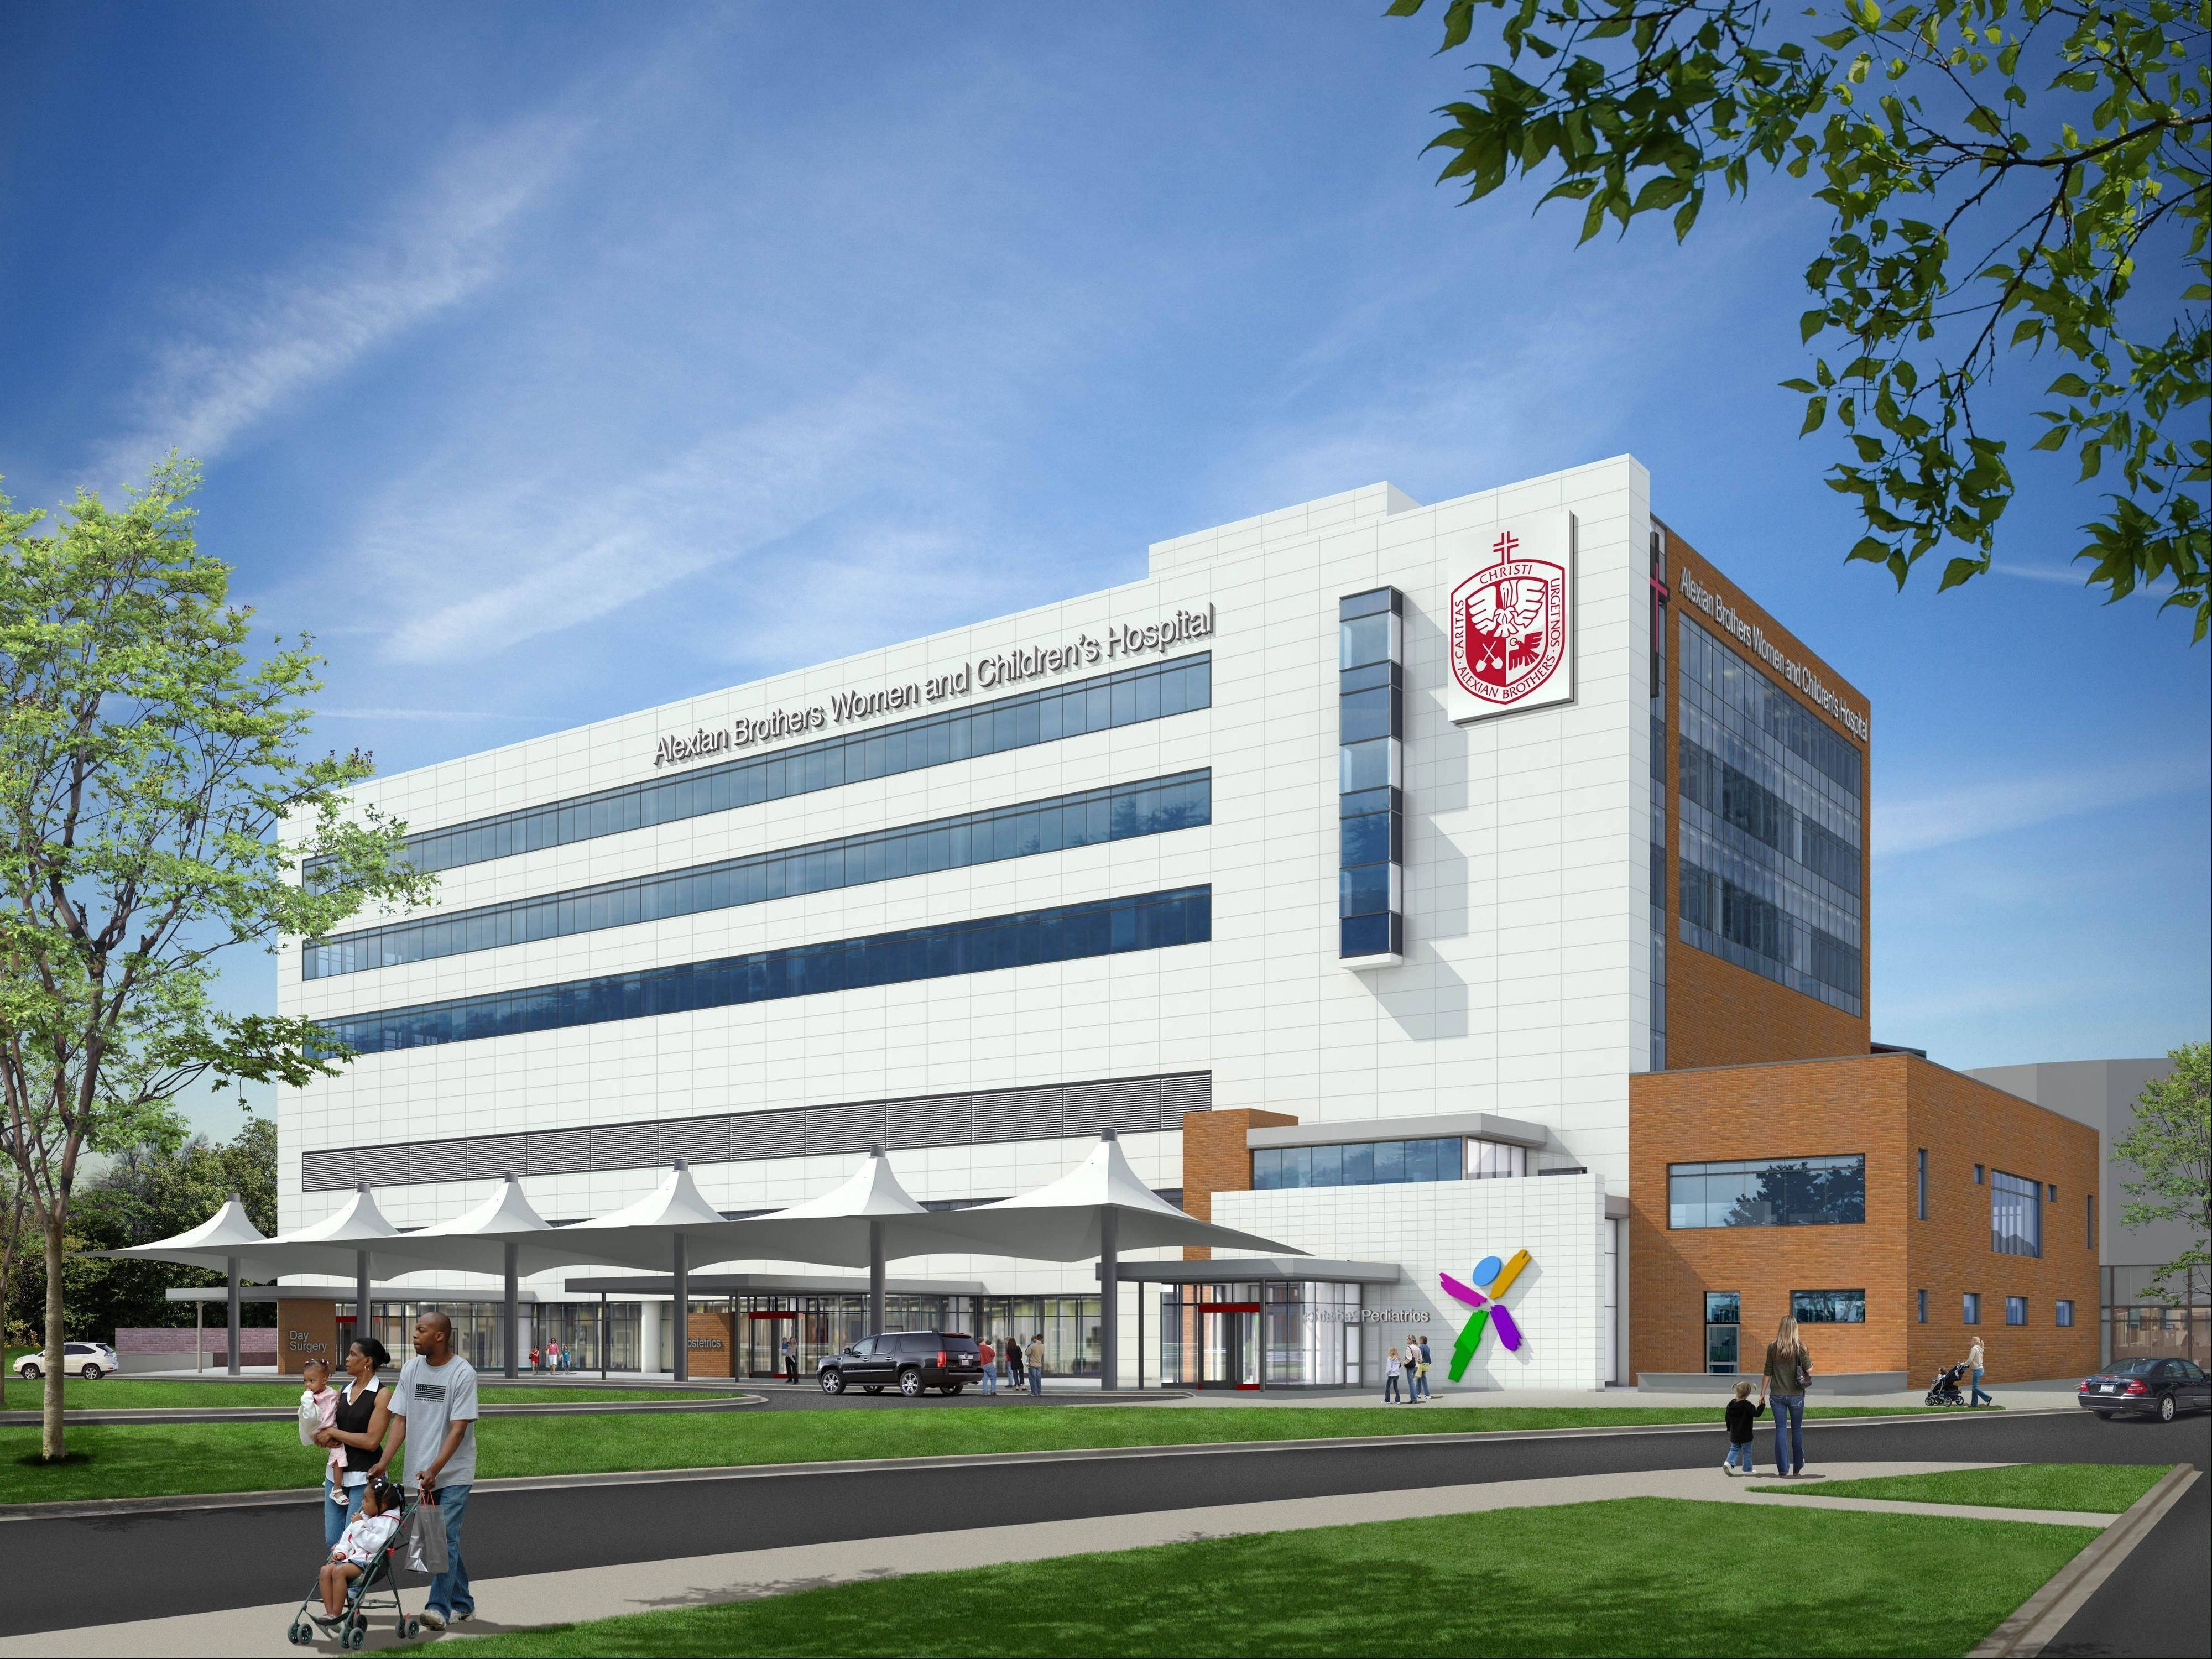 This is a rendering of what the exterior of the new hospital will look like when completed.